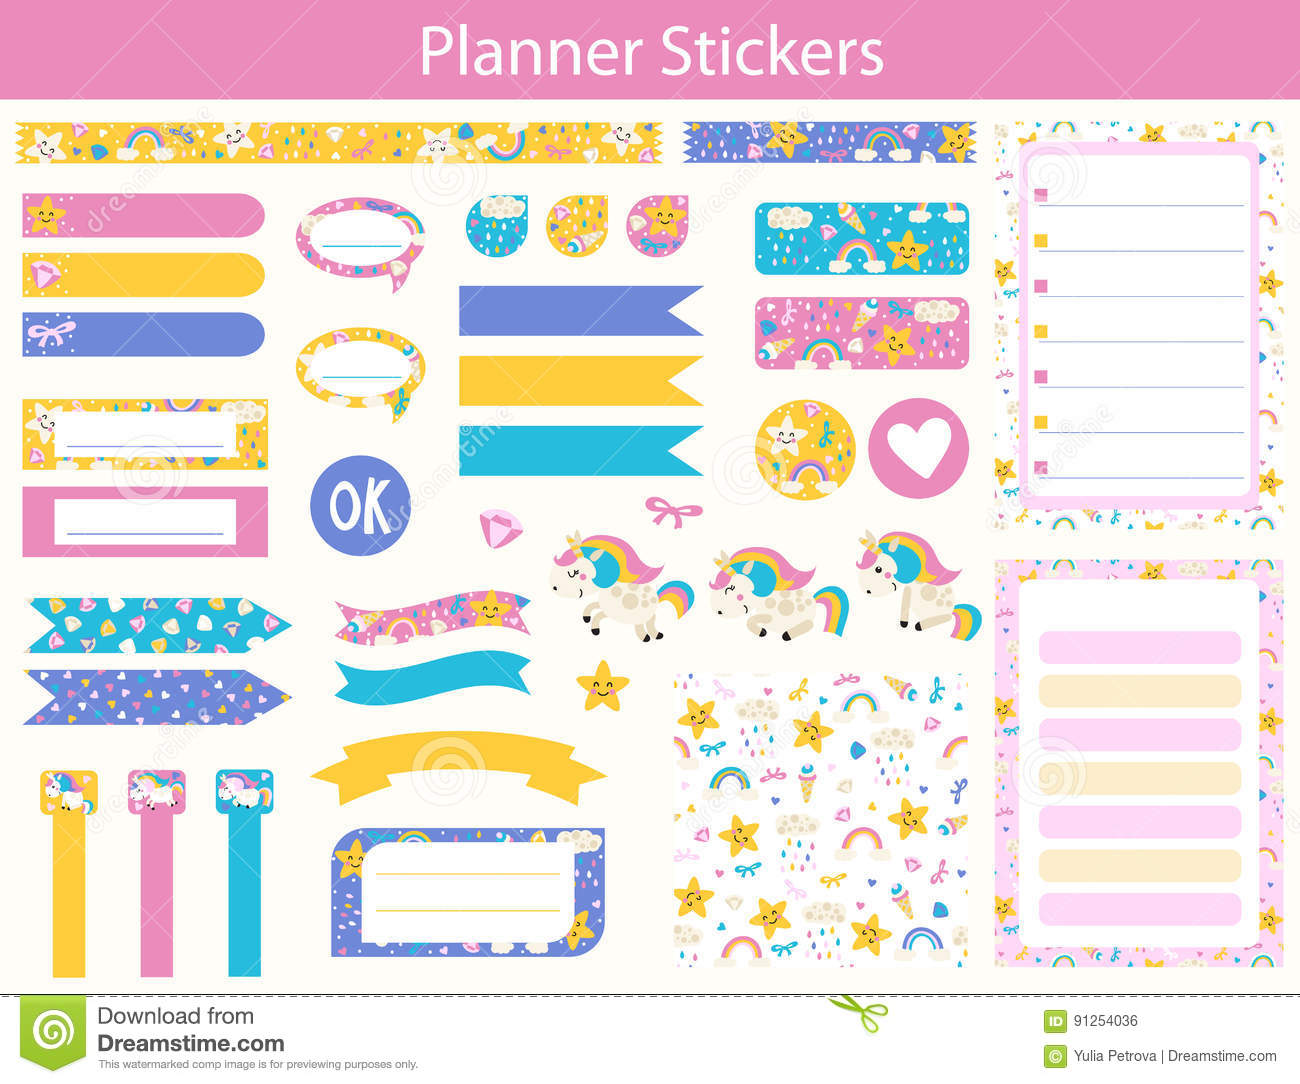 Planner stickers with cute Unicorn